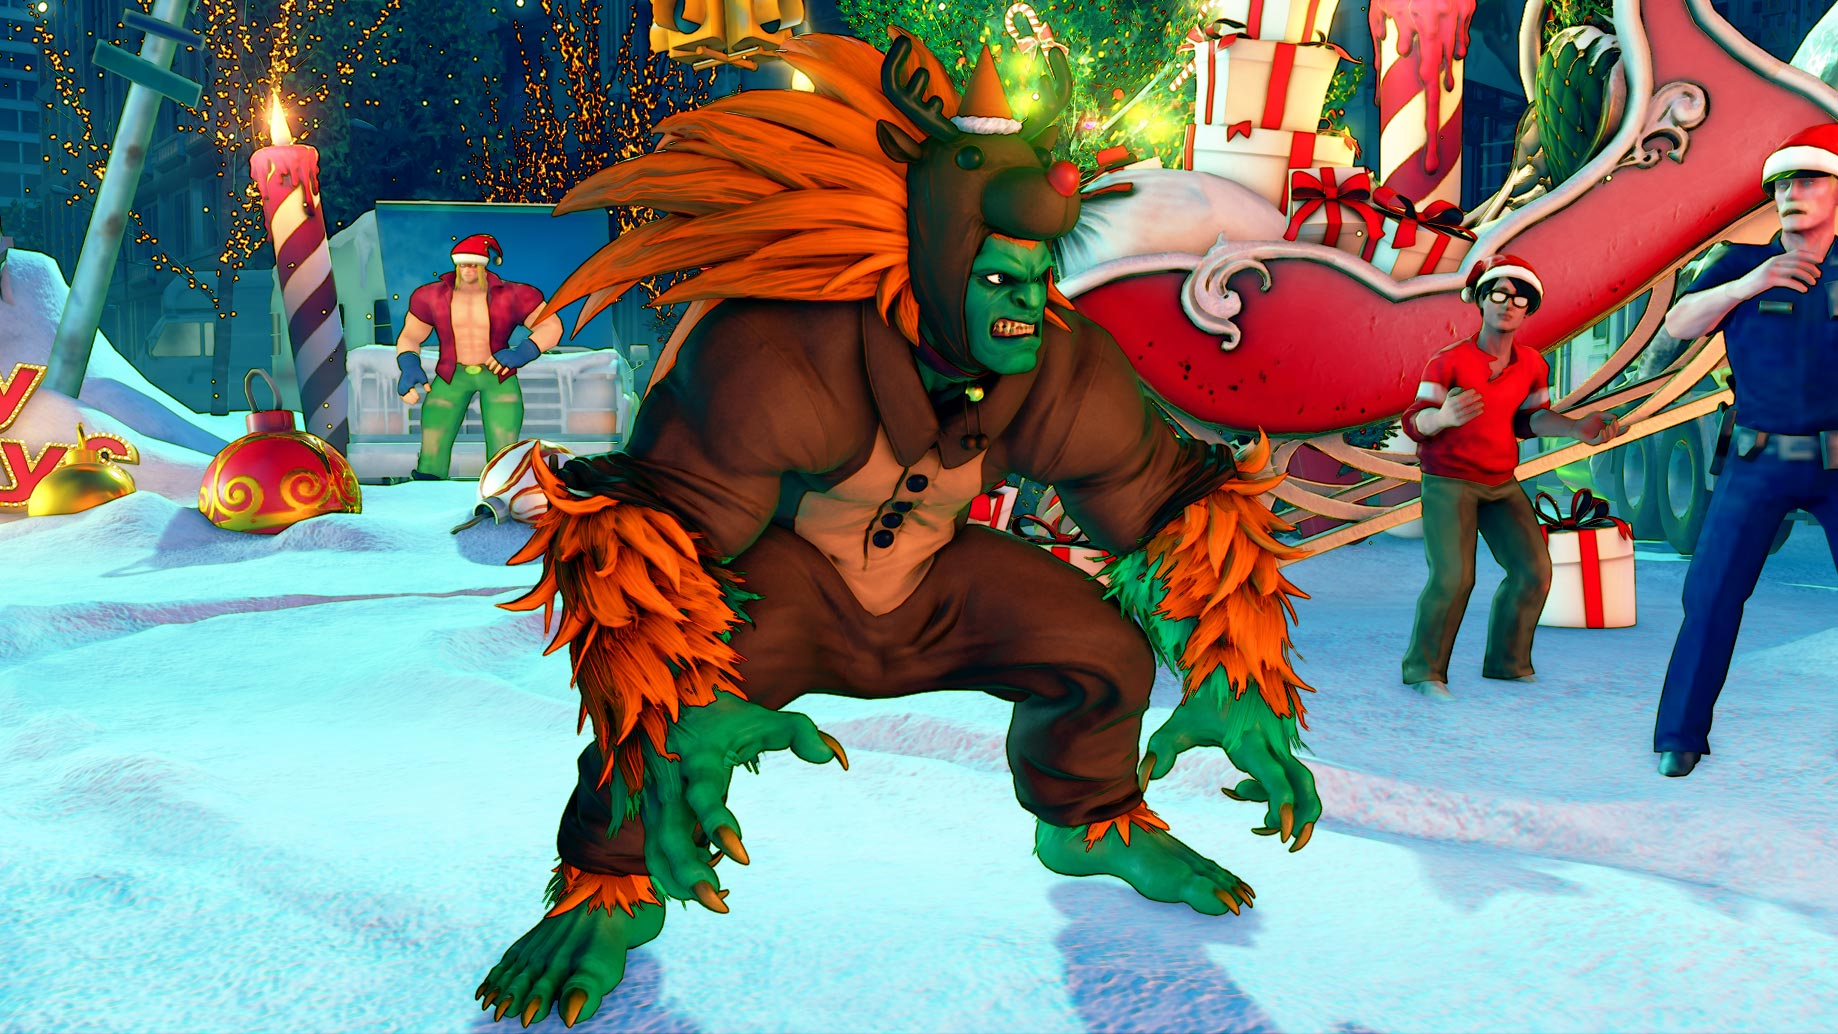 New Street Fighter 5 holiday costumes 6 out of 12 image gallery